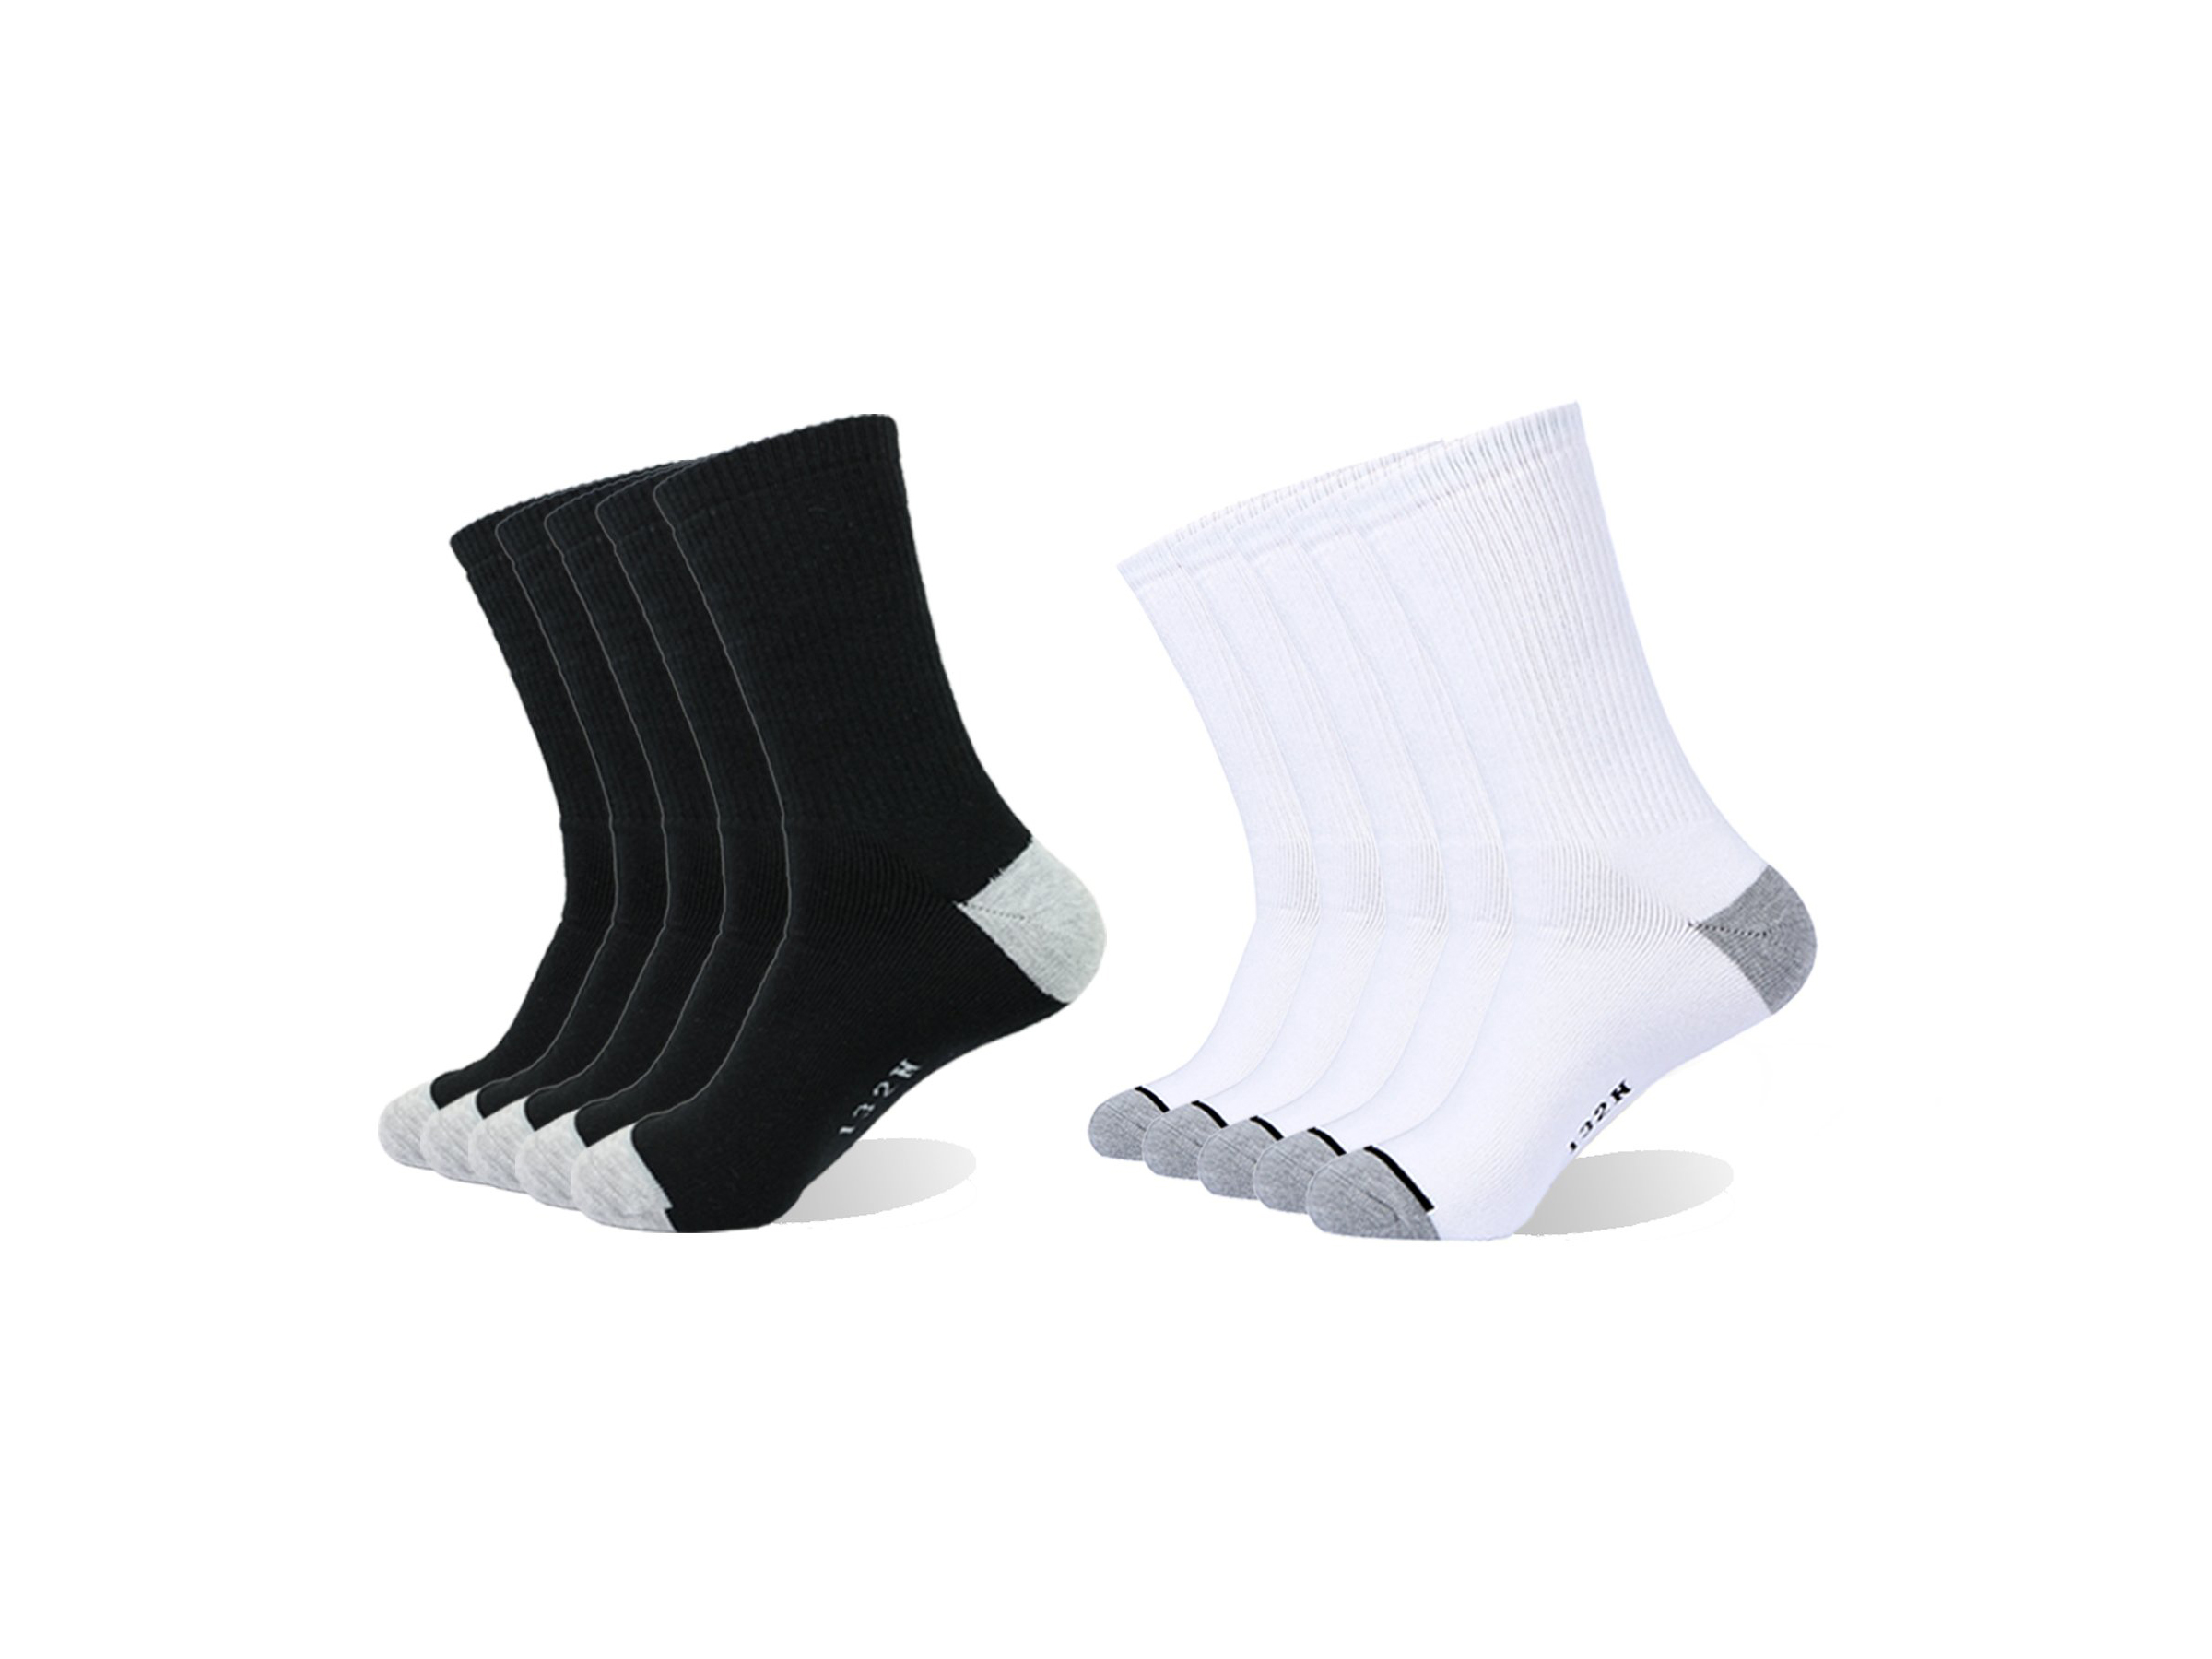 enswear performance socks amazon